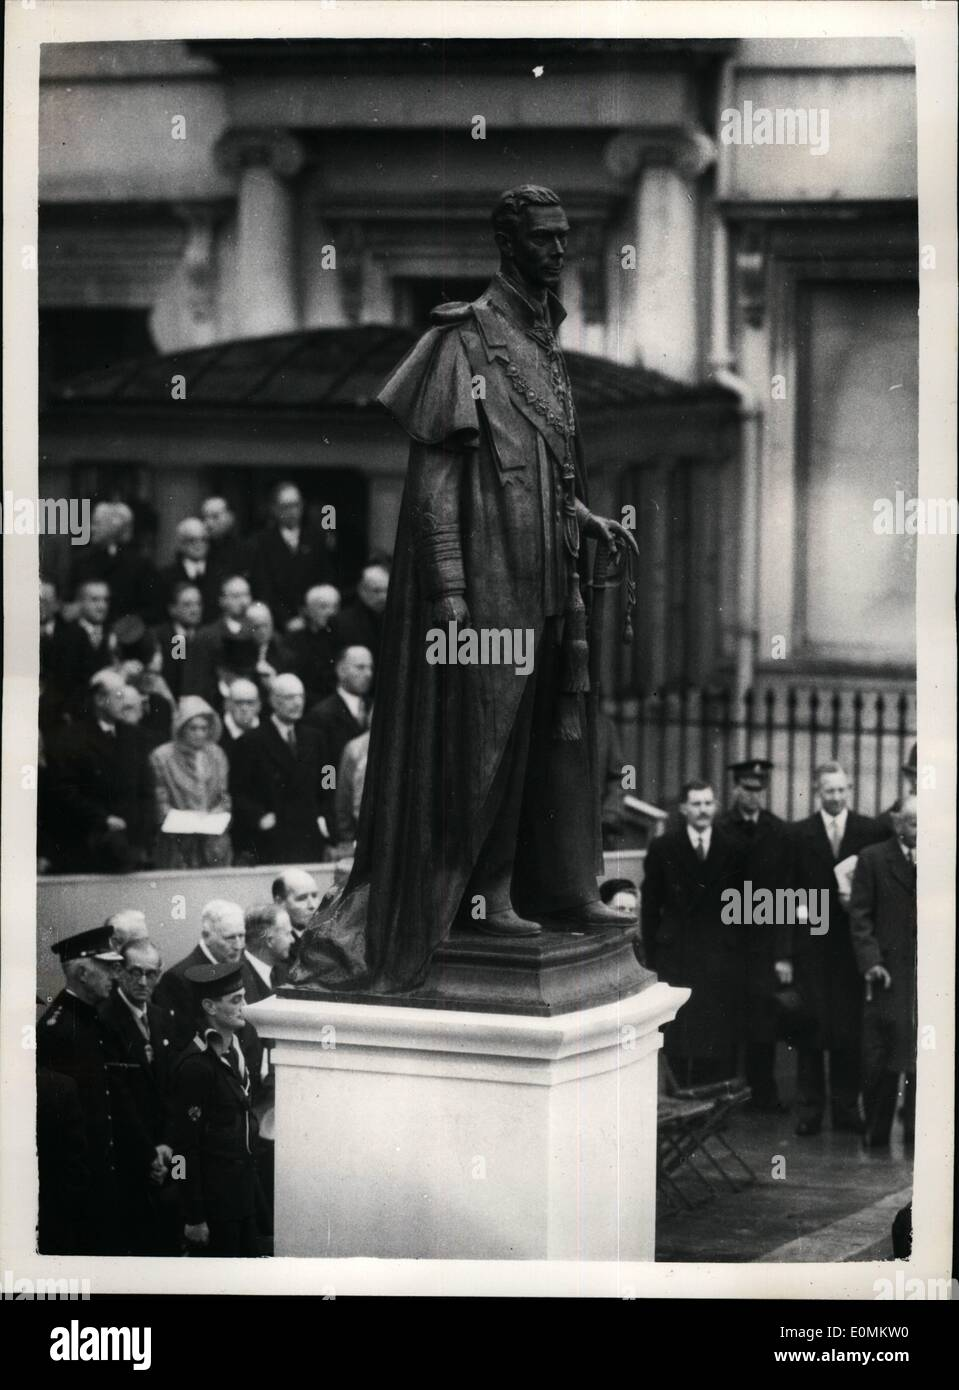 Oct. 10, 1955 - Queen Un~eils memorial to her father. Crowds filing past king George VI Statue.: H.M. The Queen this morning - in the presence of other members of the Royal Family - unveiled the statue to her father King George VI - in Carlton Gardens. Photo shows View of the memorial - after the unvelling ceremony at Carlton Gardens this morning. Stock Photo